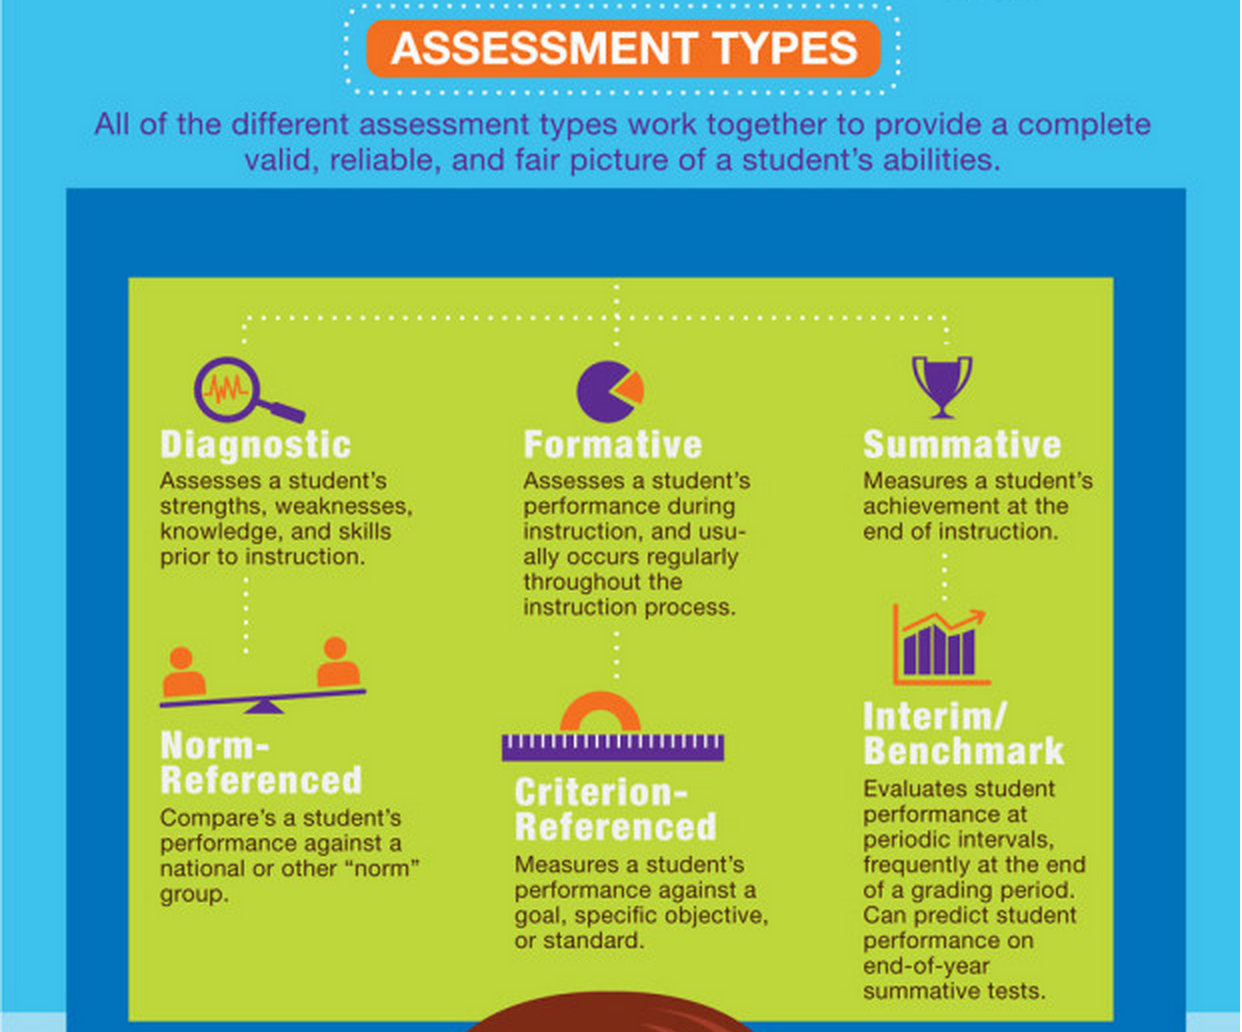 A Good Visual Featuring 6 Assessment Types